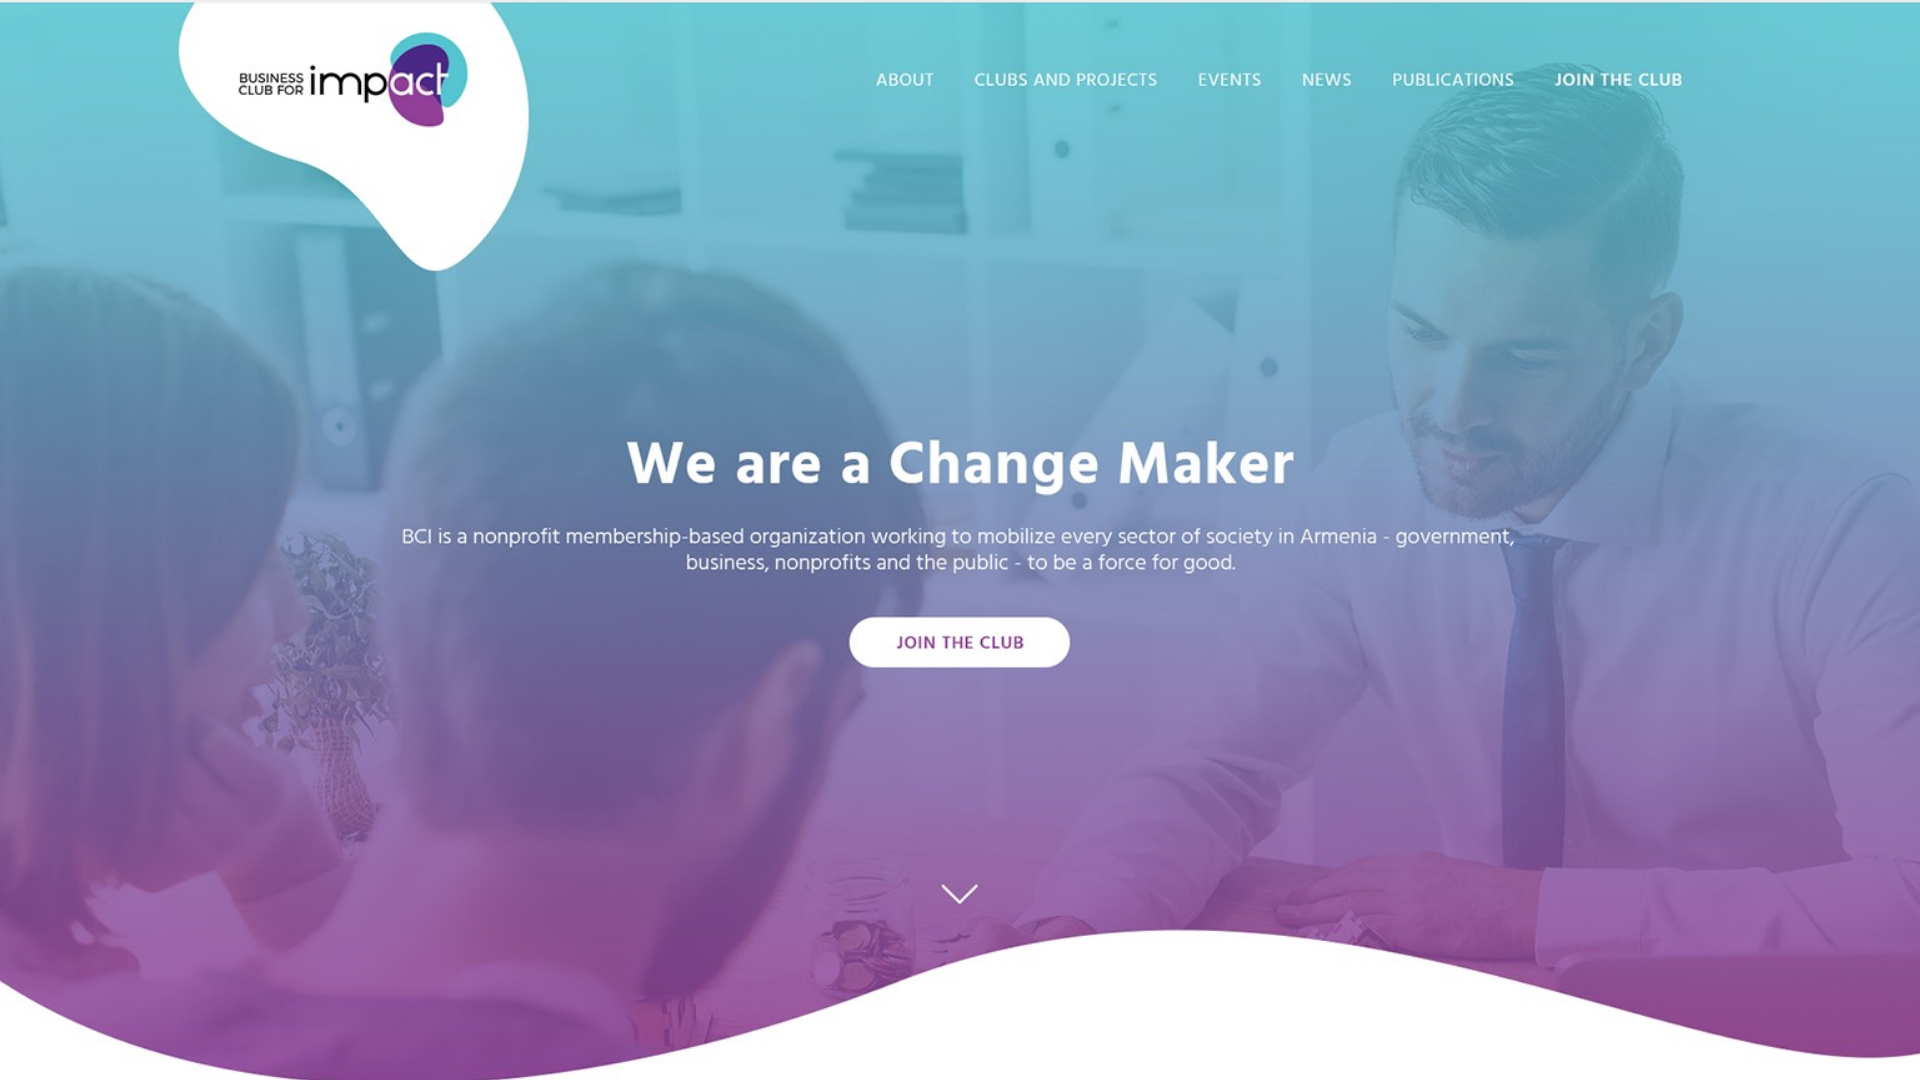 Making Change with User Experience